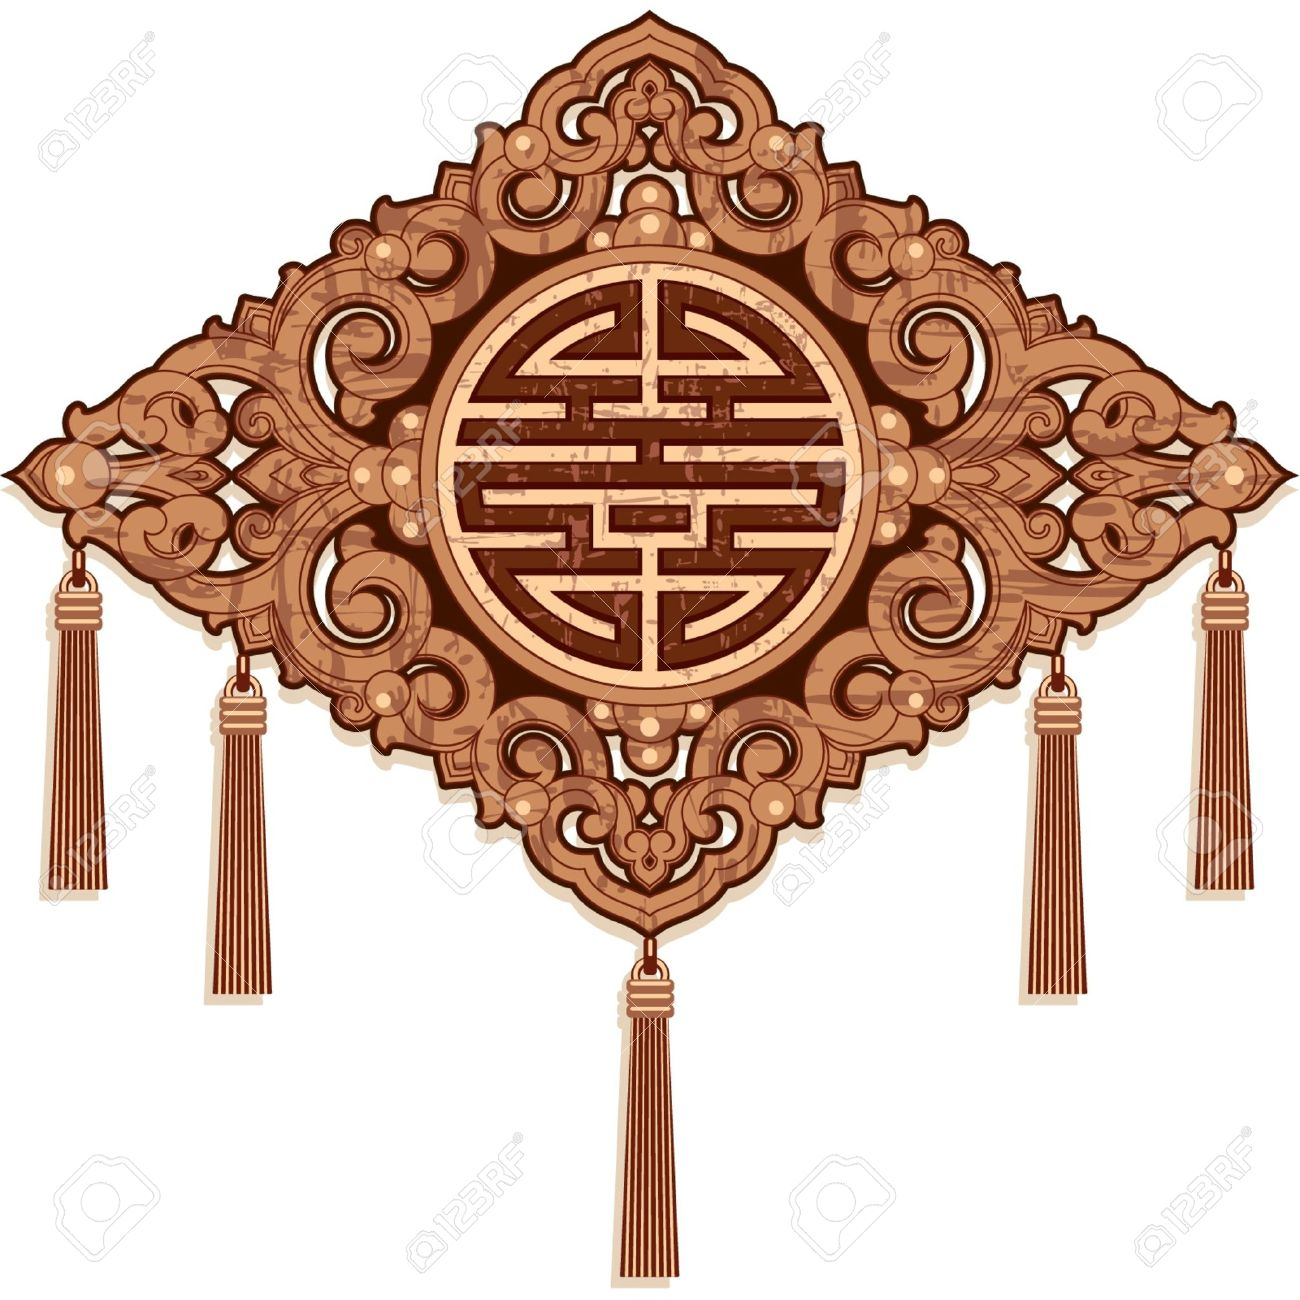 Oriental Design Element Wood Craft Decoration Royalty Free